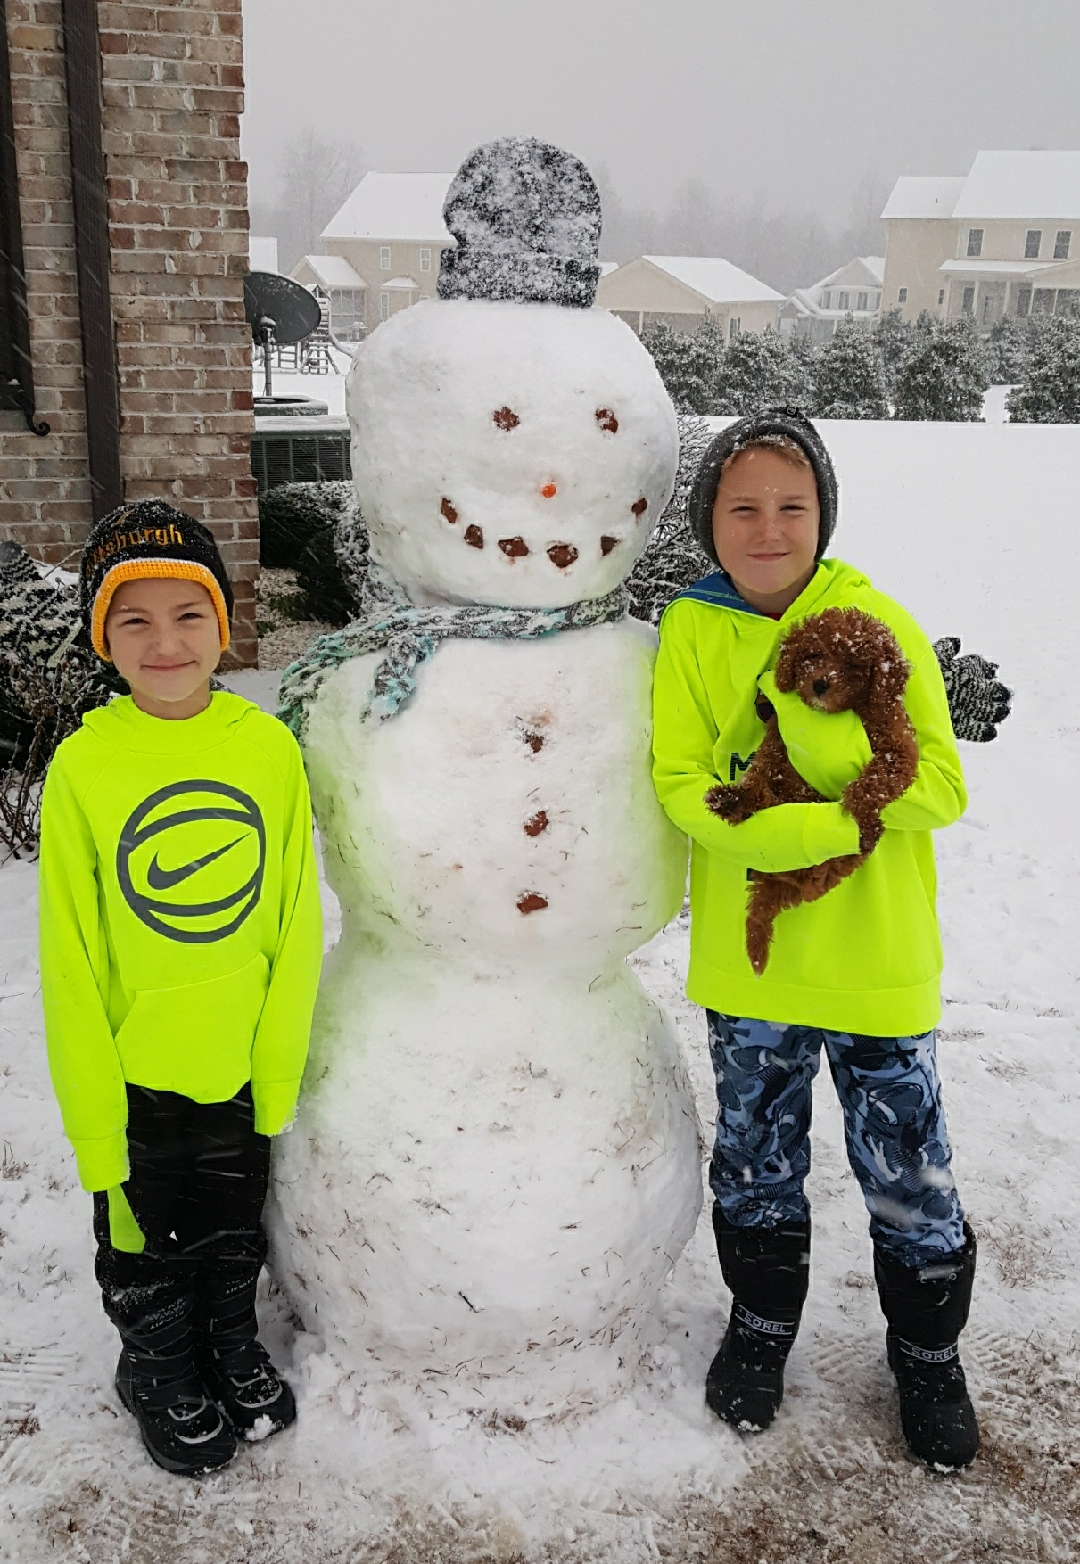 "<div class=""meta image-caption""><div class=""origin-logo origin-image wtvd""><span>WTVD</span></div><span class=""caption-text"">Our grandsons and their new puppy (Gracey) enjoying the new fallen snow. (Jerome Nashadka - ABC11 Eyewitness)</span></div>"